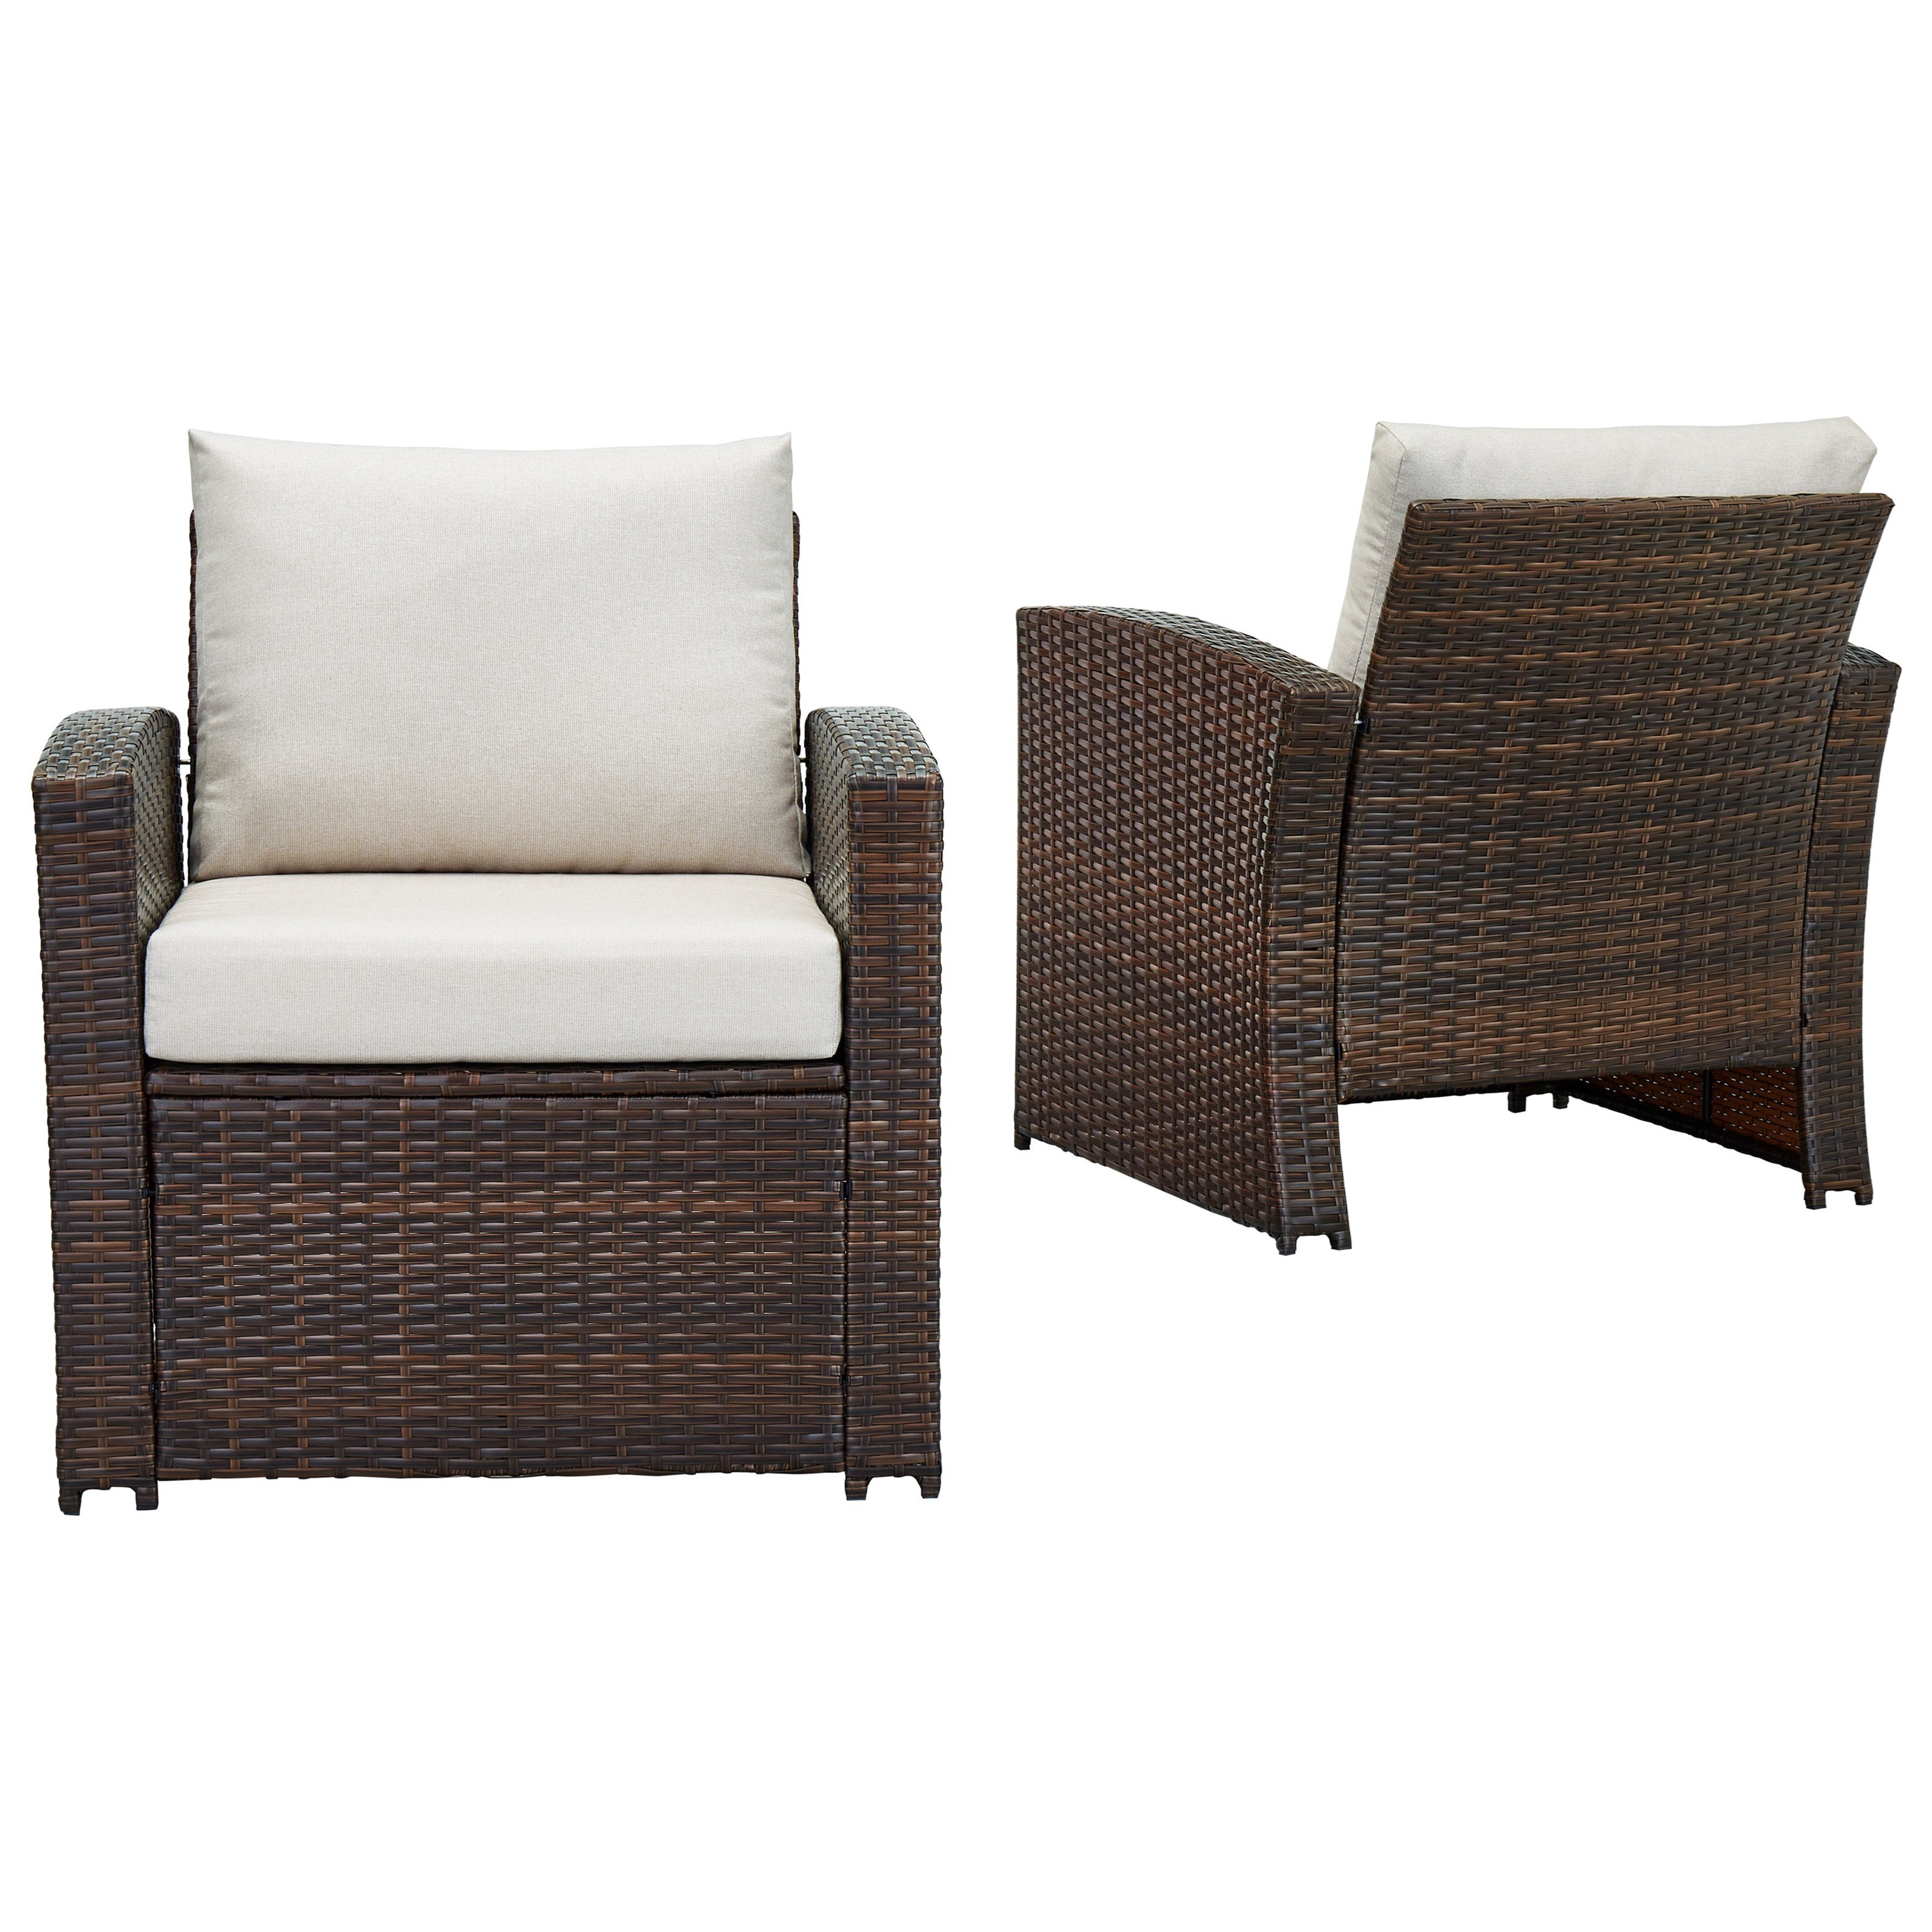 East Brook Set of 2 Lounge Chairs w/ Cushion by Signature Design by Ashley at Zak's Warehouse Clearance Center